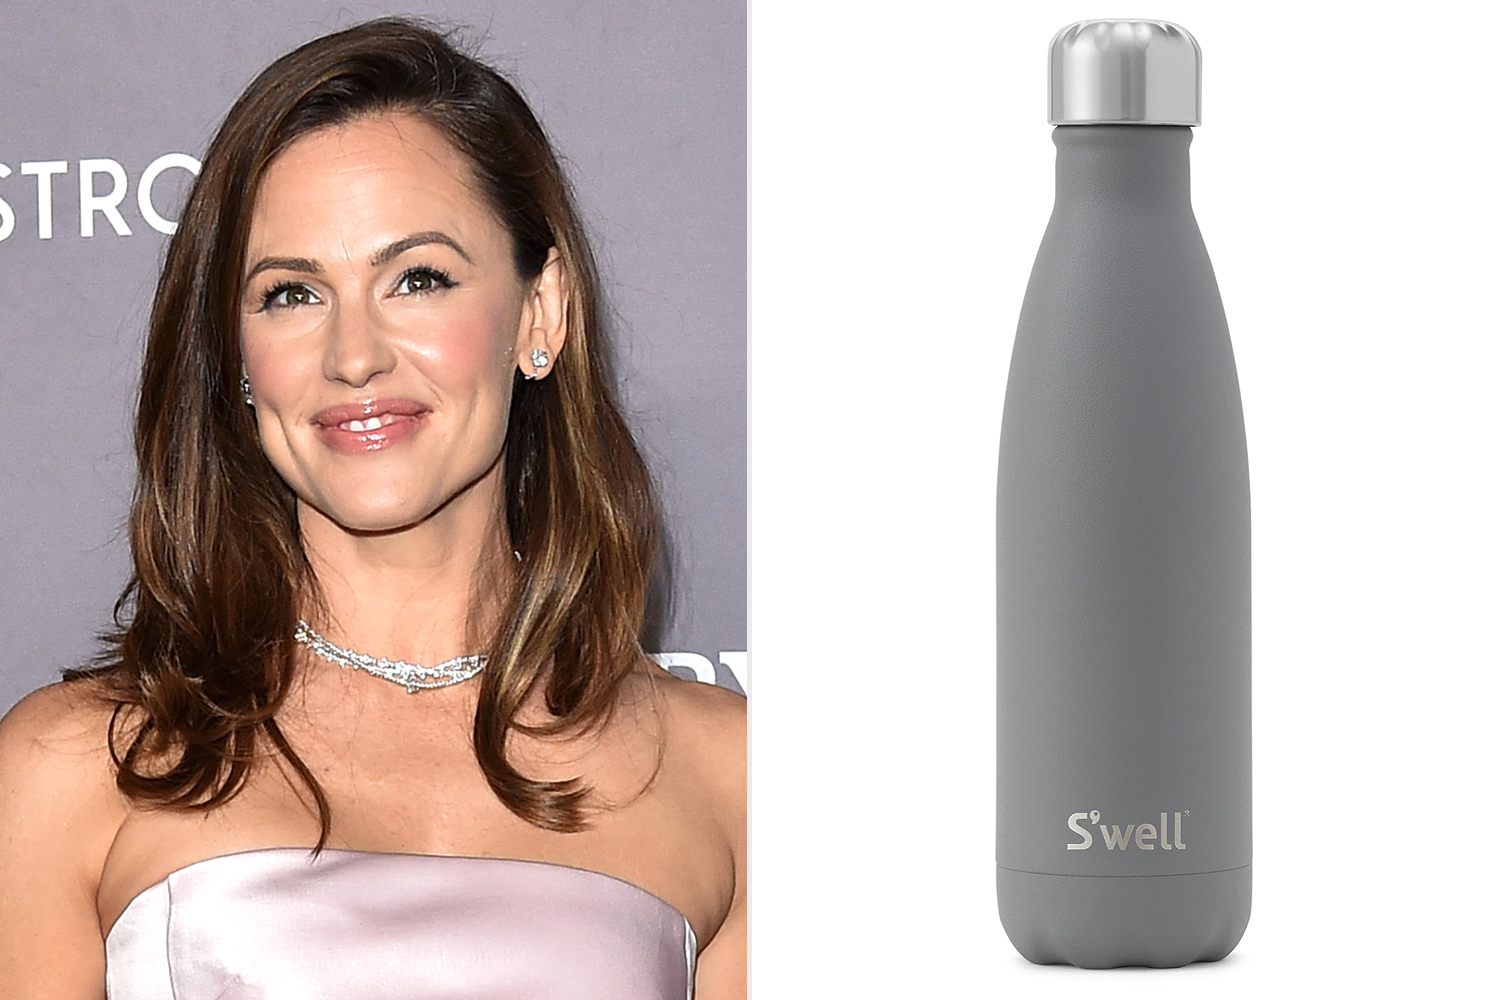 celeb-loved items on sale at nordstrom